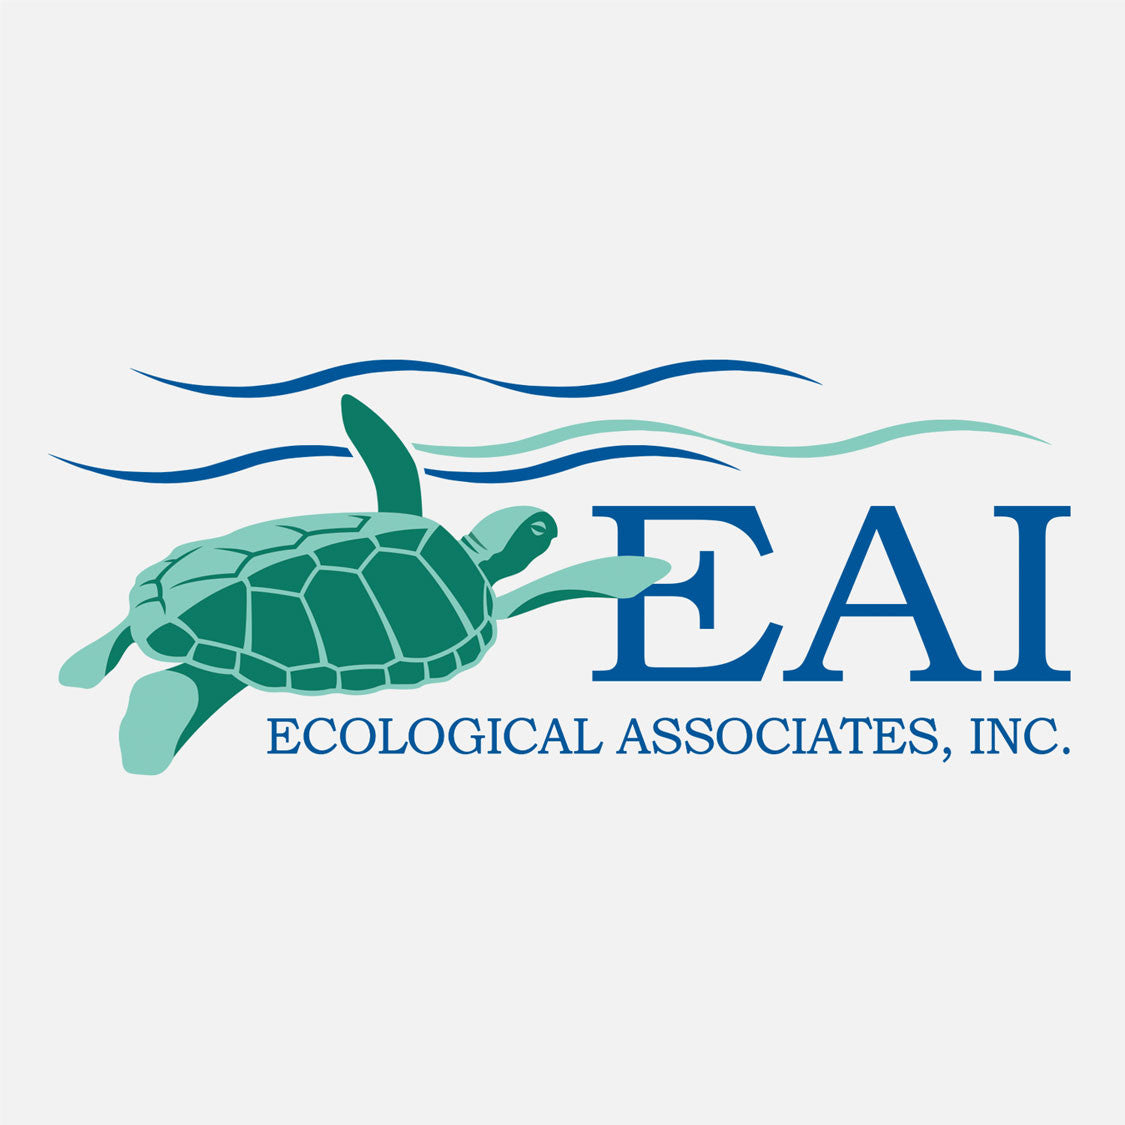 EAI provides environmental monitoring, permitting, and consultation services. The logo is a graphic of a swimming green turtle.